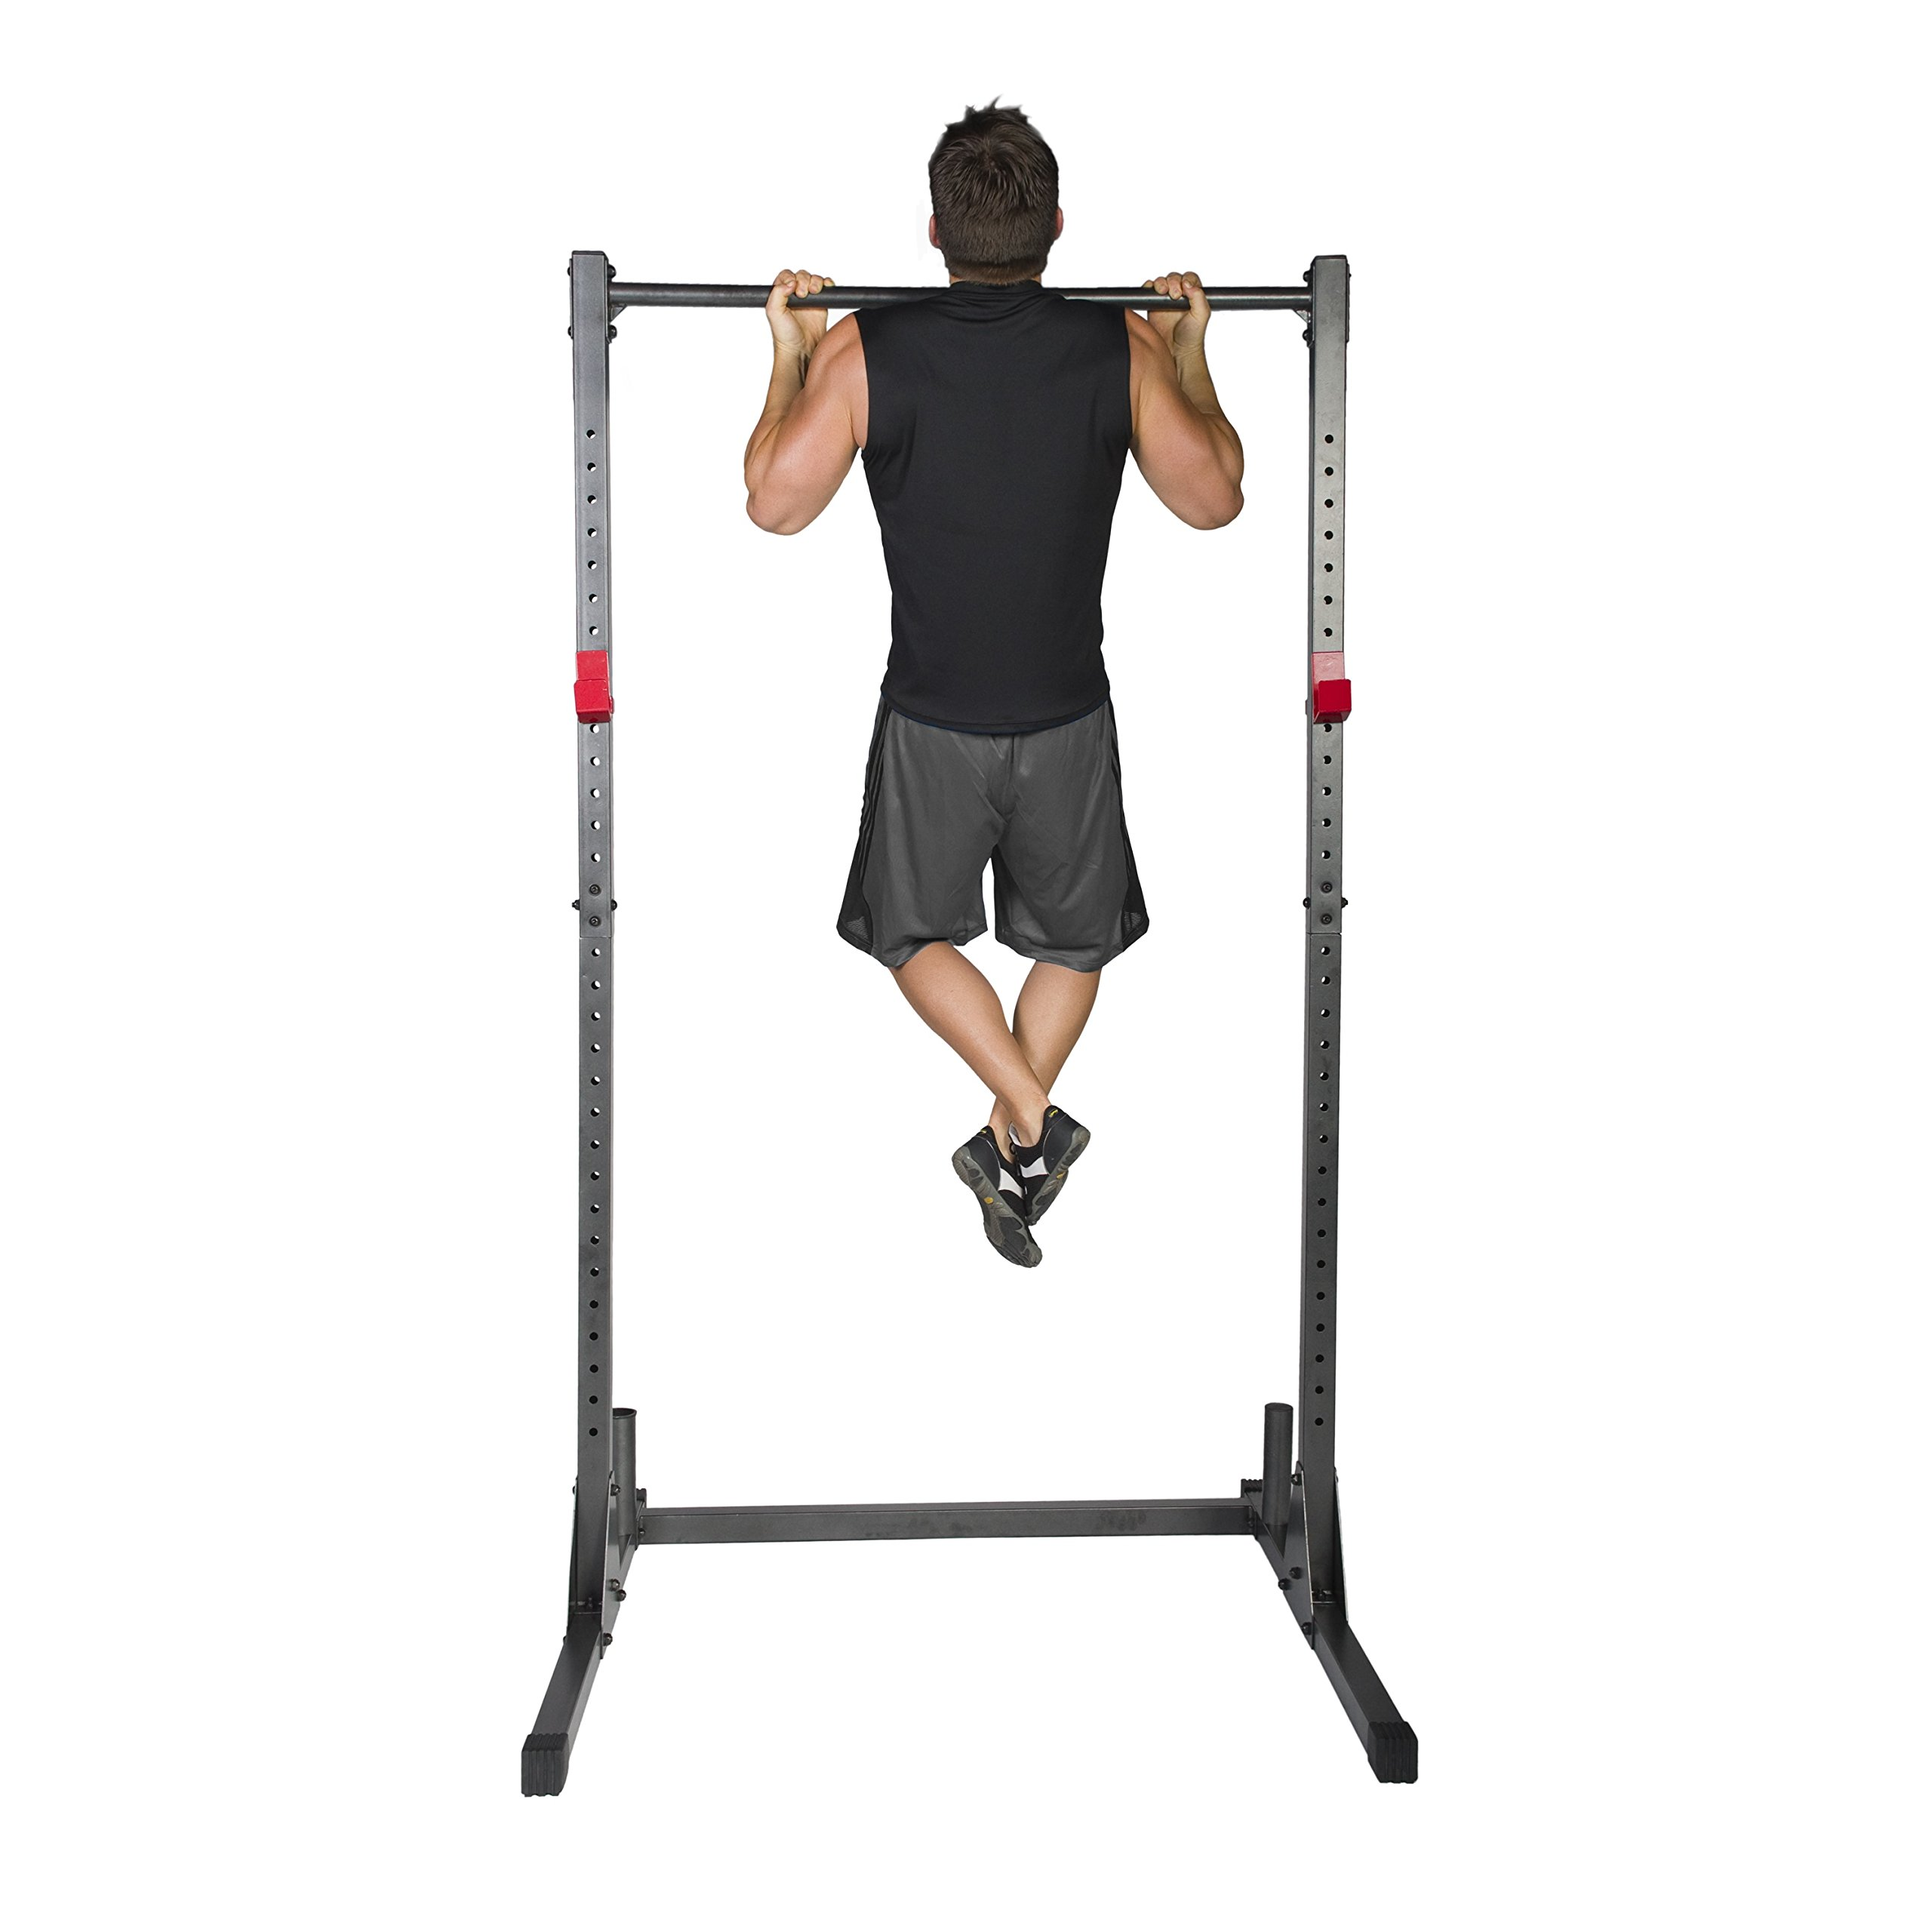 barbell na gyms to storage product precor rack fitness go discovery busy half equipment img body series